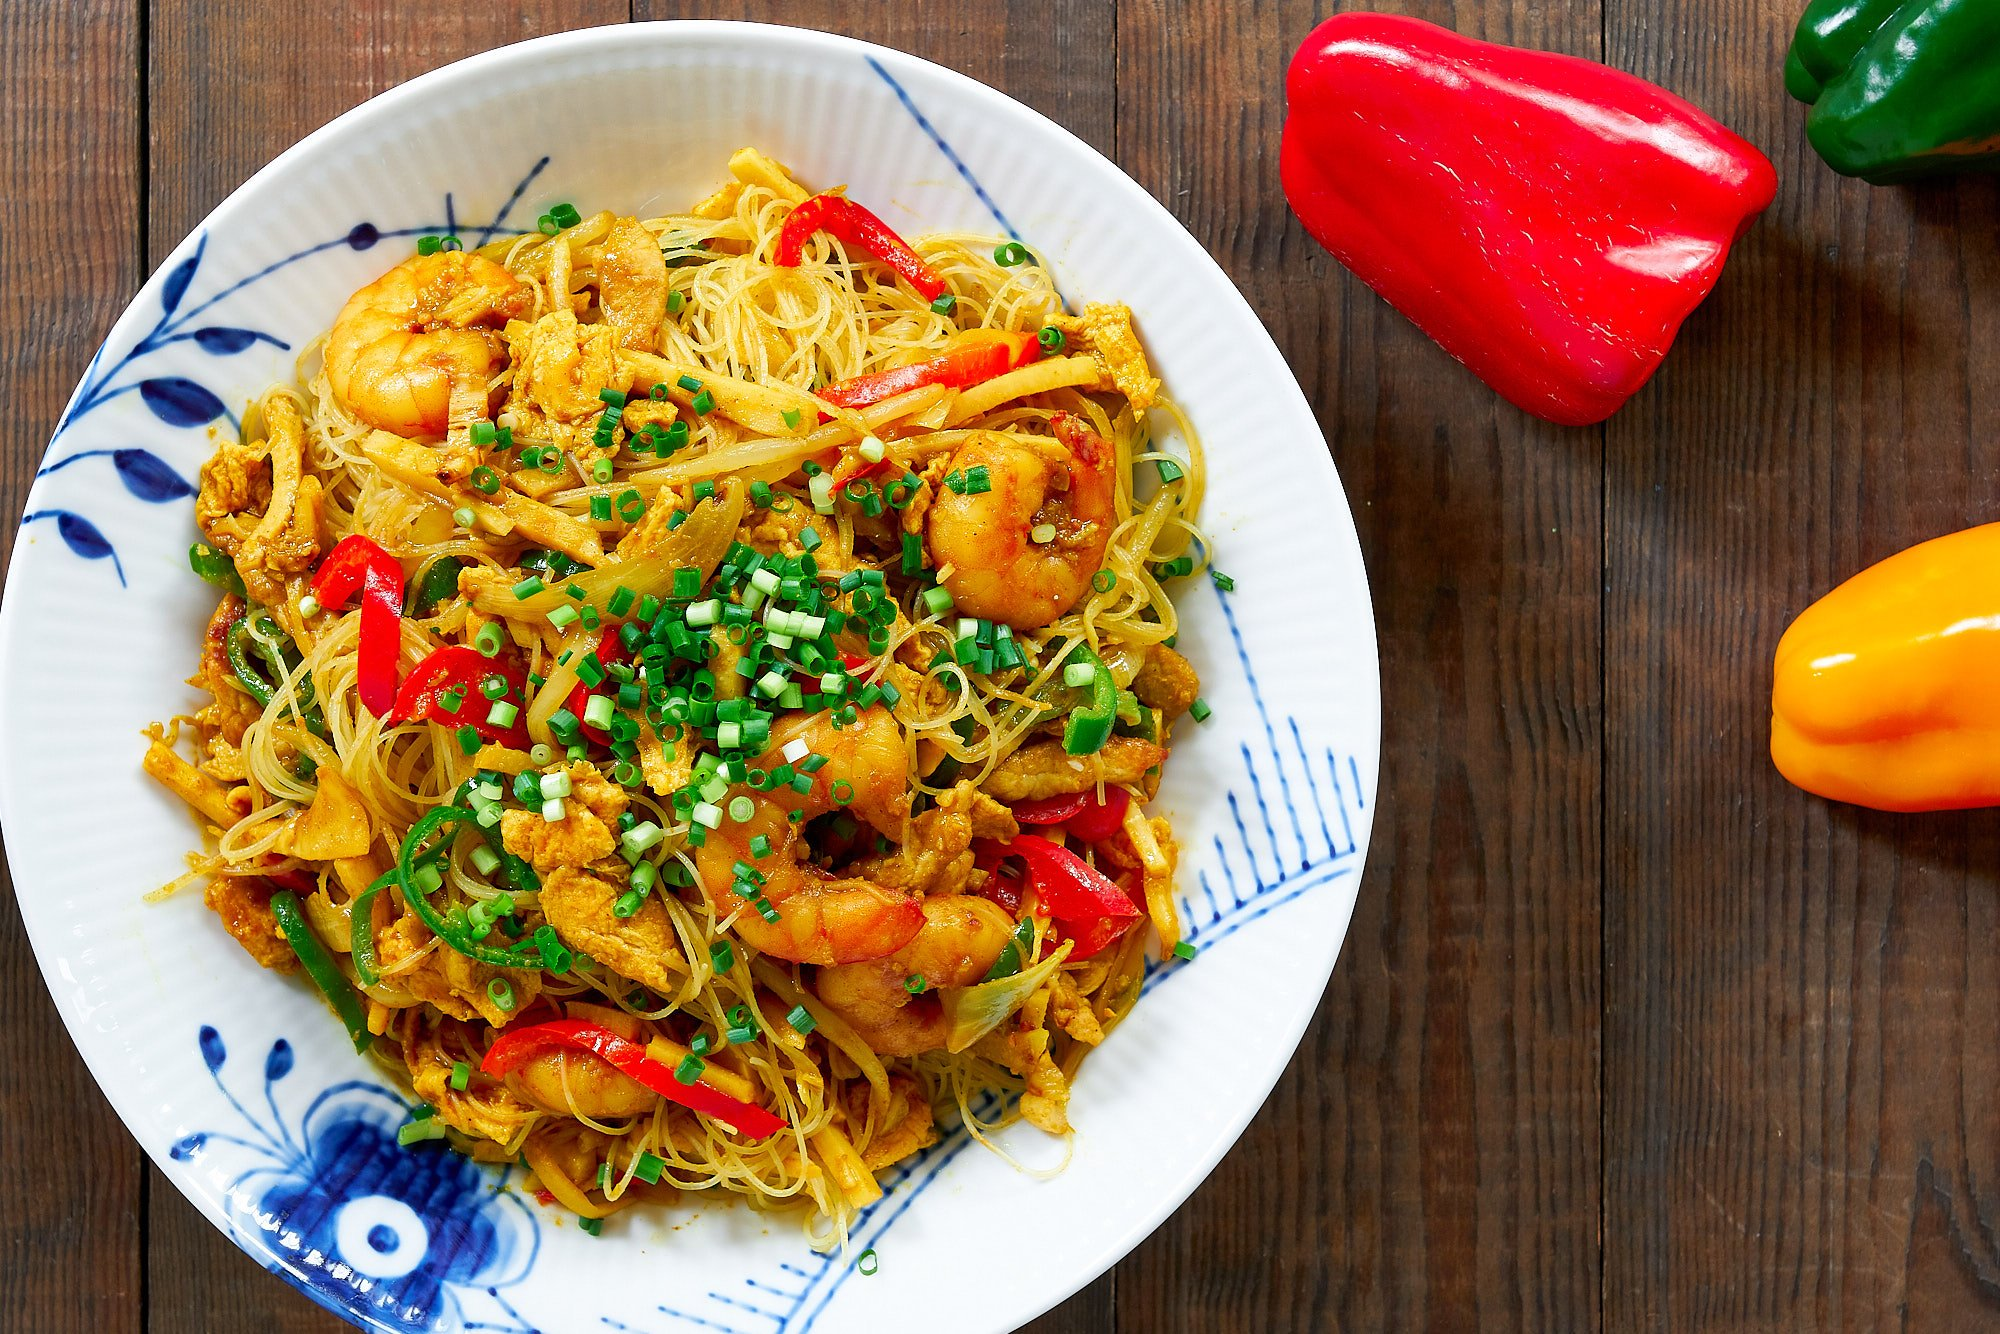 Singapore Noodles are a delicious Chinese-American one-pan meal loaded with shrimp, veggies, and curry flavored rice noodles.